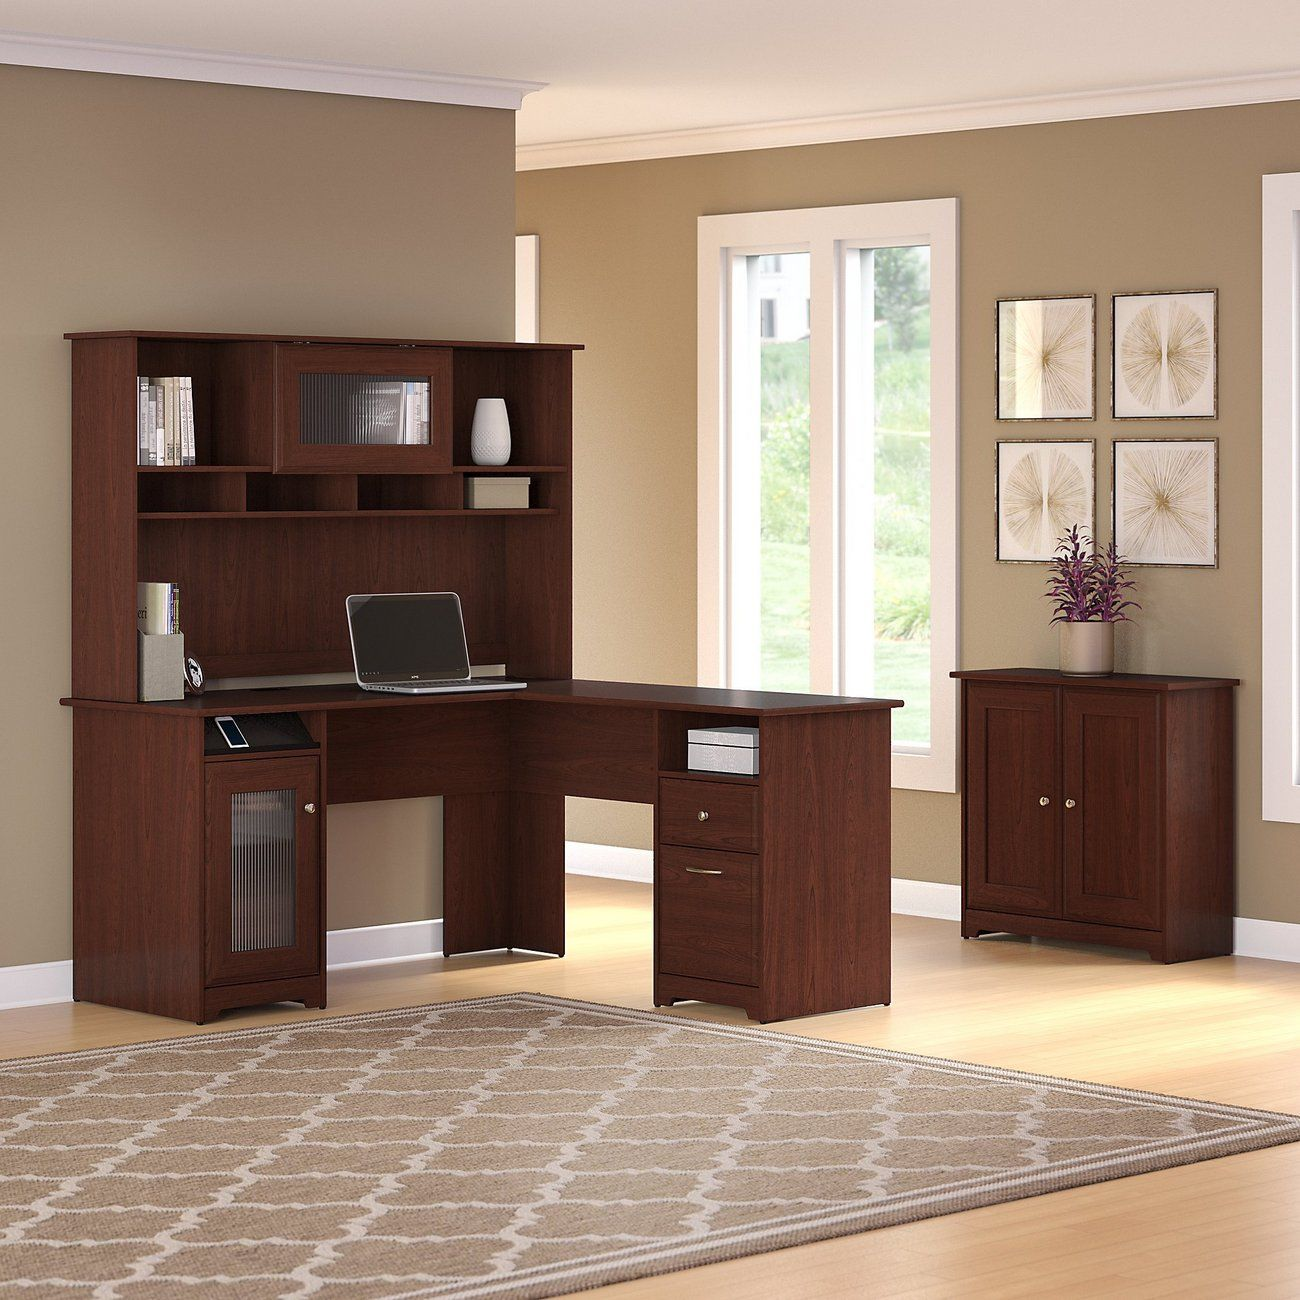 Cabot L Shaped Desk W Hutch Small Storage Cabinet W Doors In